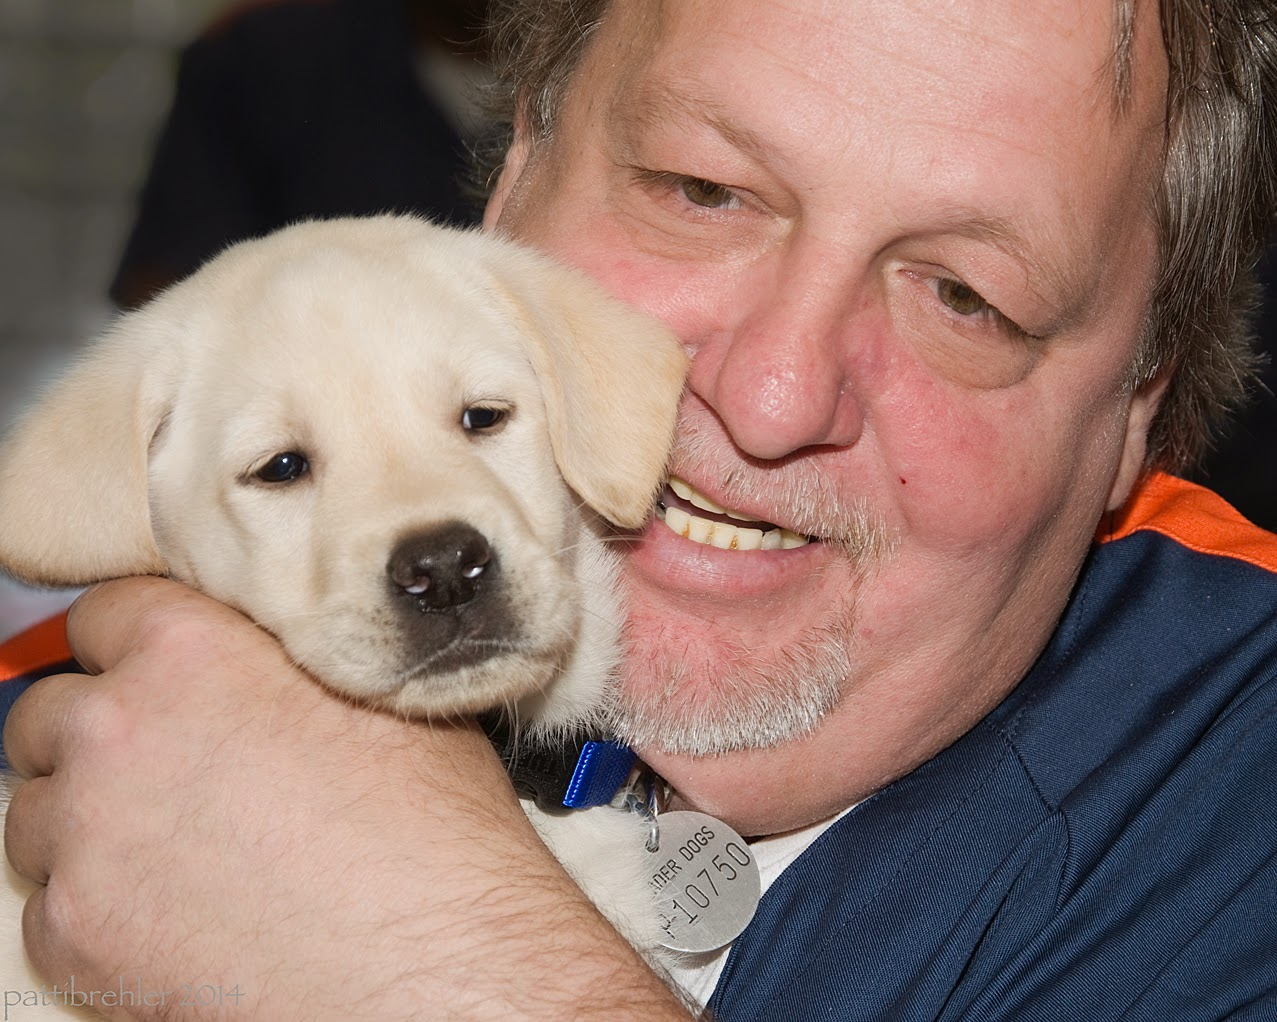 A close up shot of a man's face pressed next to the head of a small yellow lab puppy. The man is wearing a blue prison shirt, he is smiling and holding the puppy with his left hand. The puppy is facing forward.